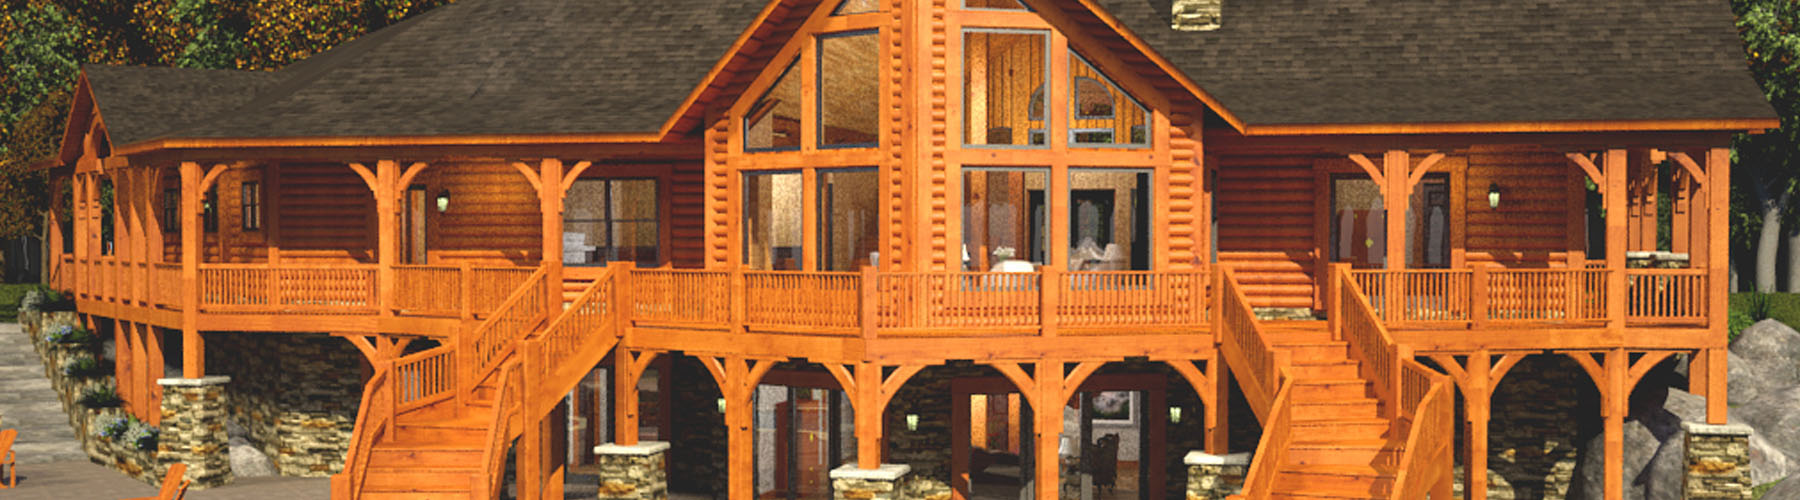 Majestic Timber Prow Ranch 2306AR-UCT Ranch Ultra Custom Timber